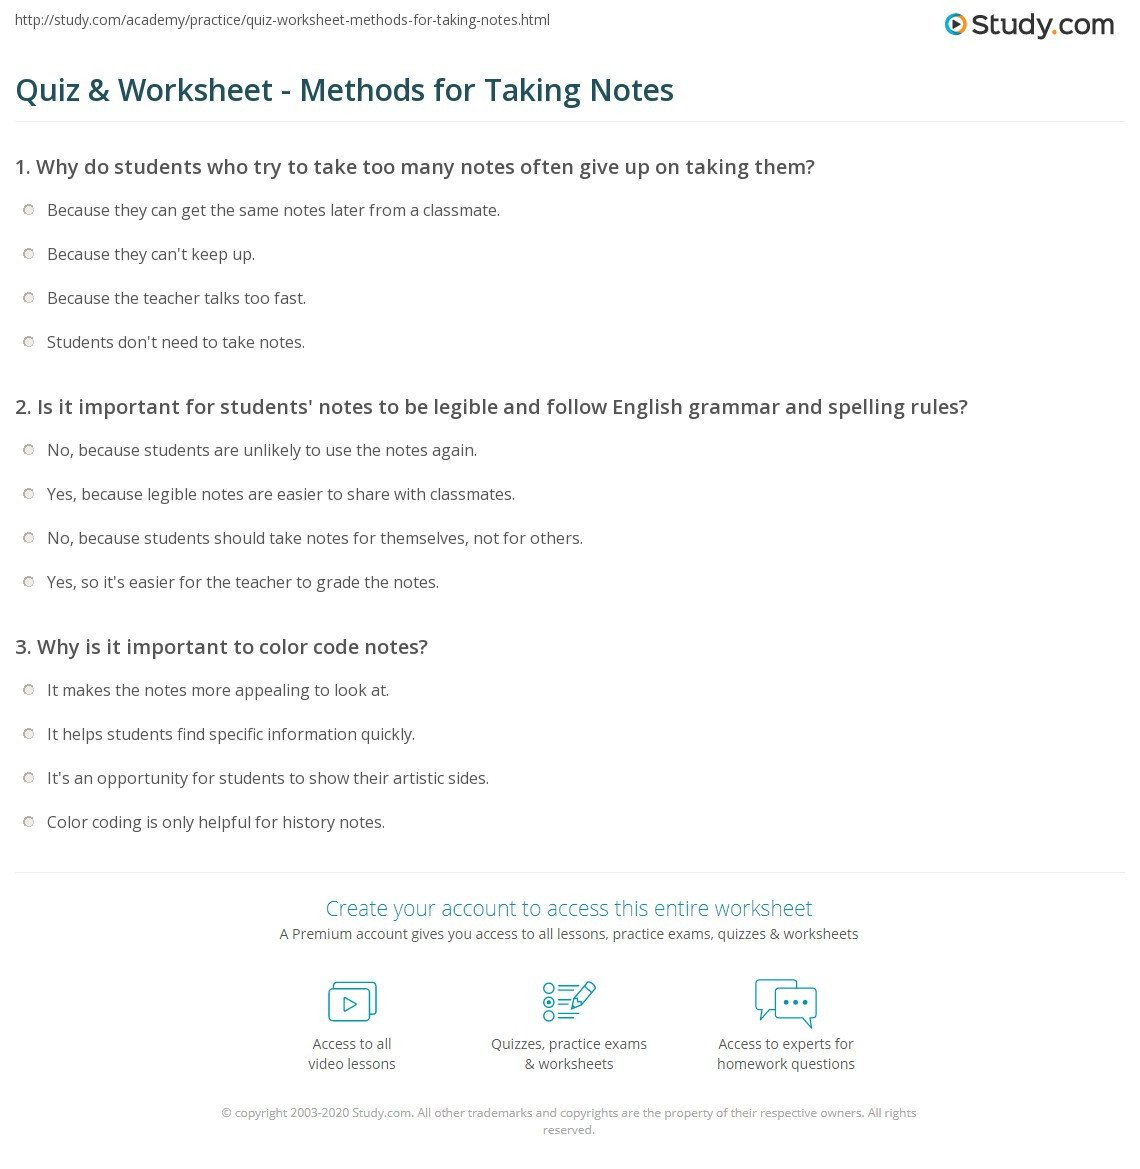 Note Taking Practice Worksheets Quiz & Worksheet Methods for Taking Notes